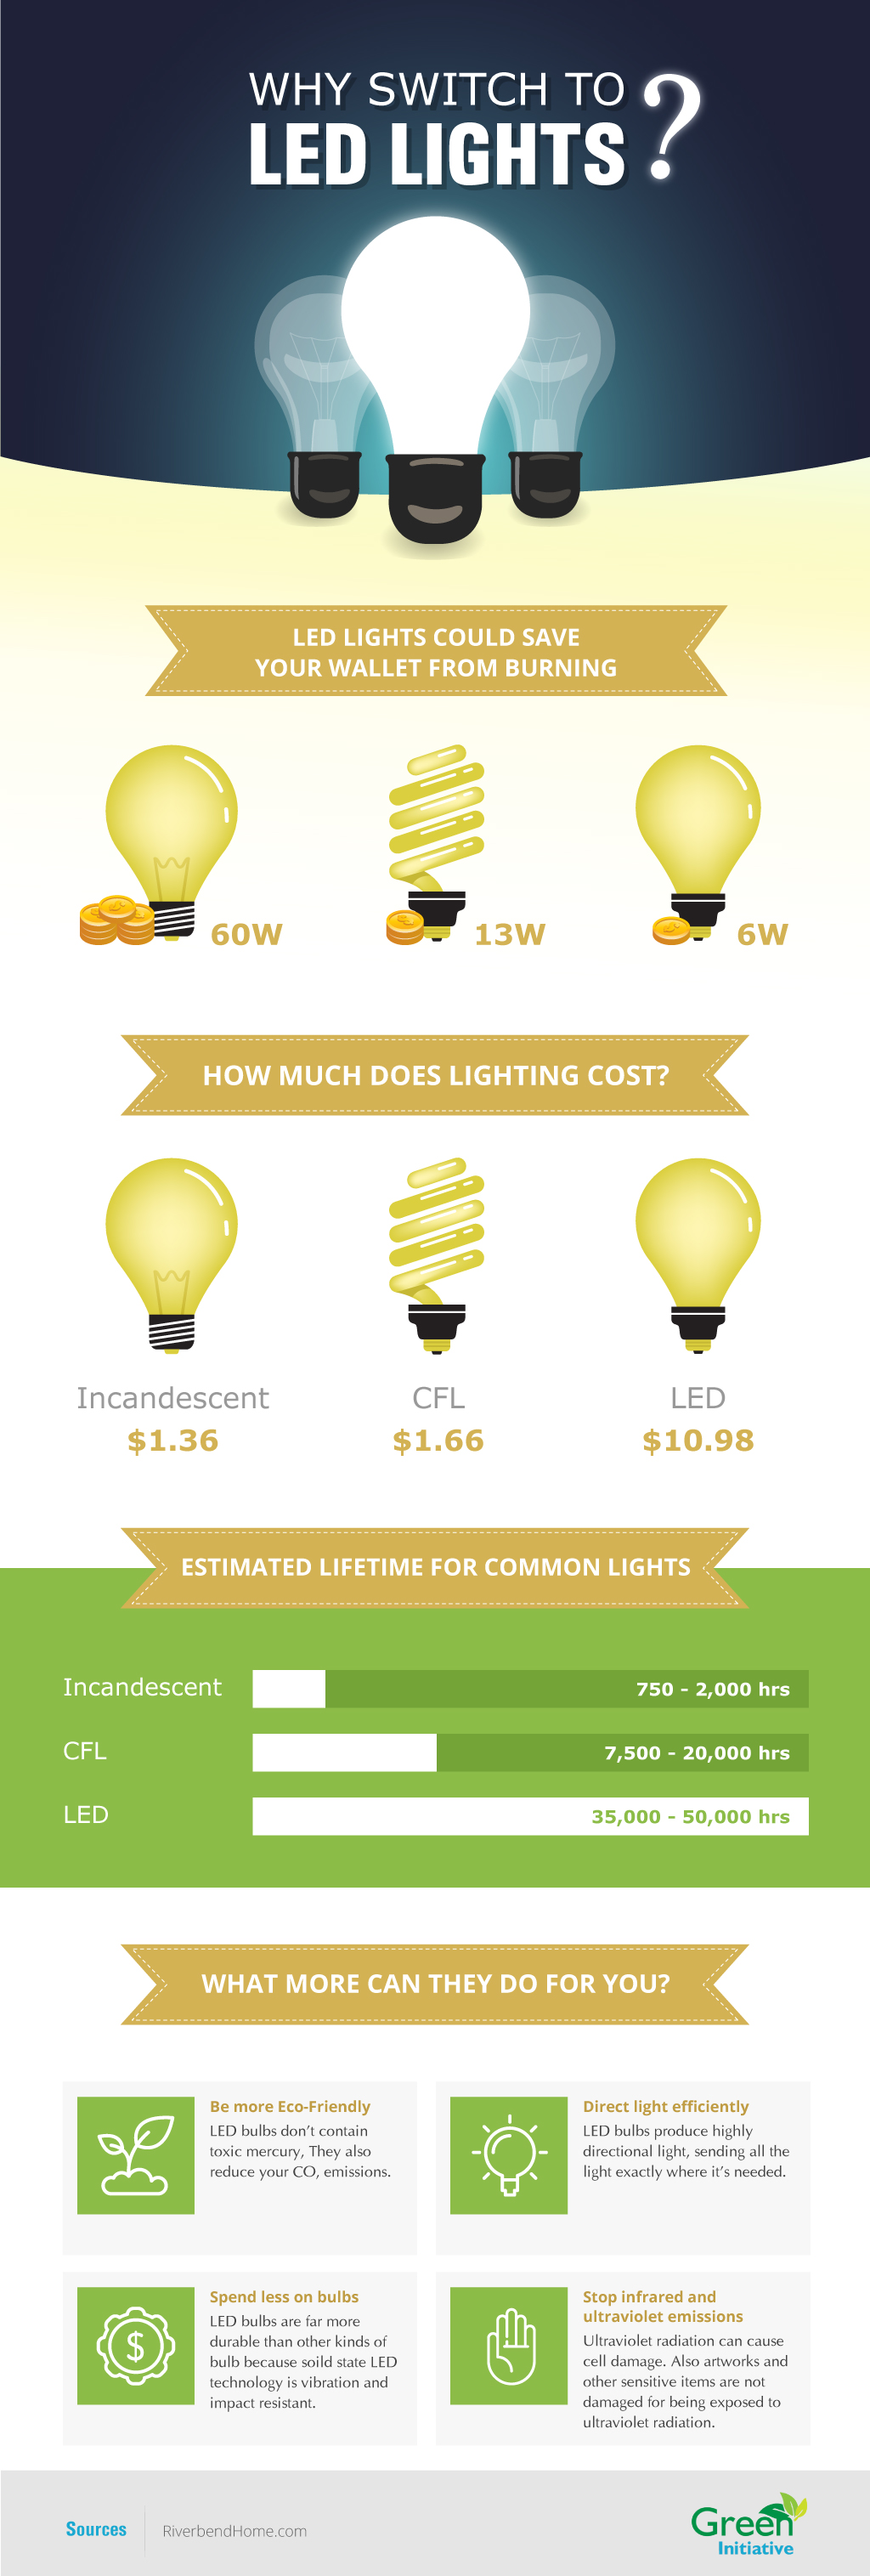 Why switch to LED Lights